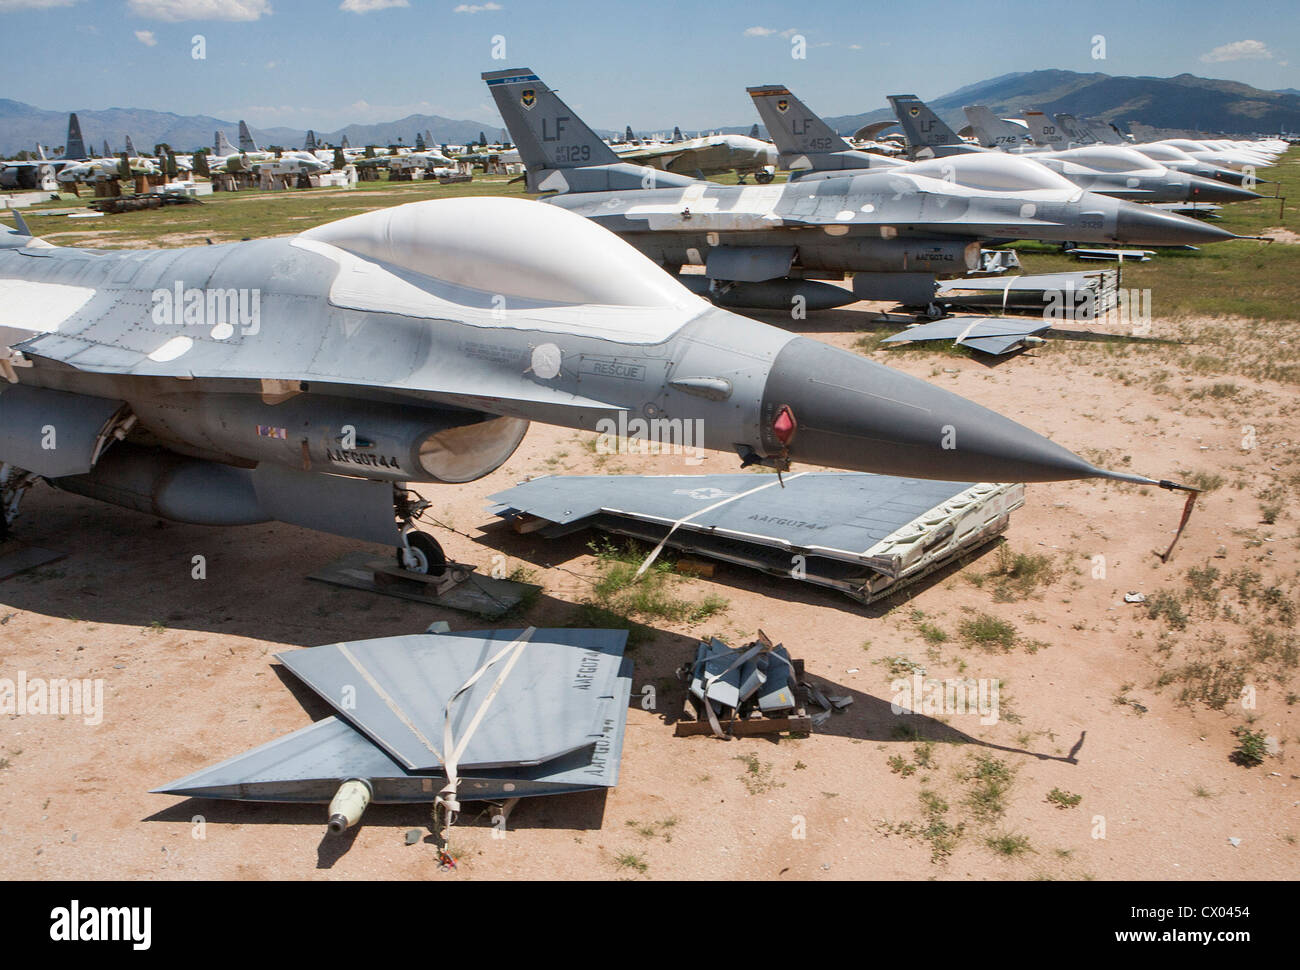 Argentina compra t6 texan F-16-fighting-falcon-aircraft-in-storage-at-the-309th-aerospace-maintenance-CX0454